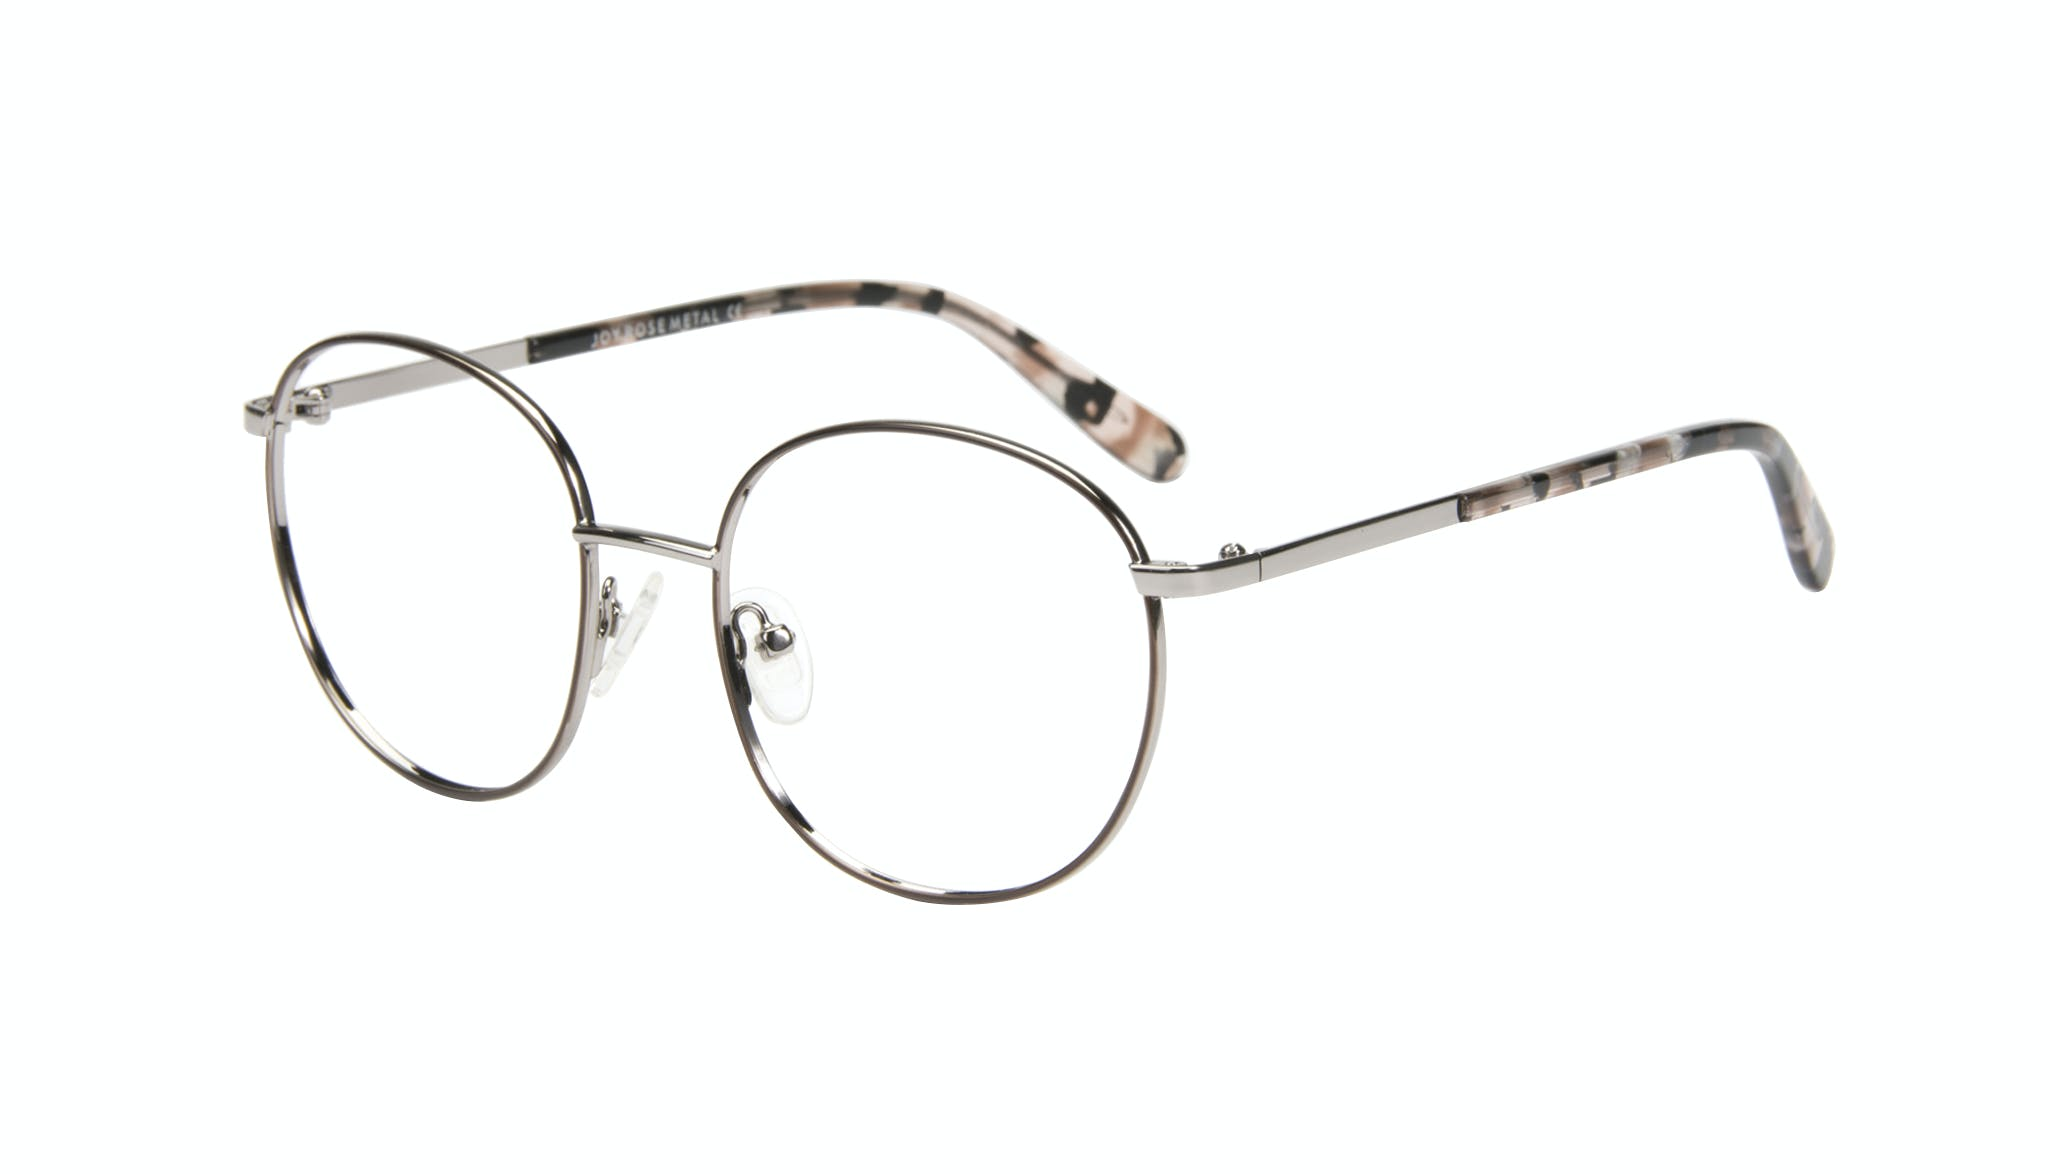 Affordable Fashion Glasses Round Eyeglasses Women Joy Rose Metal Tilt